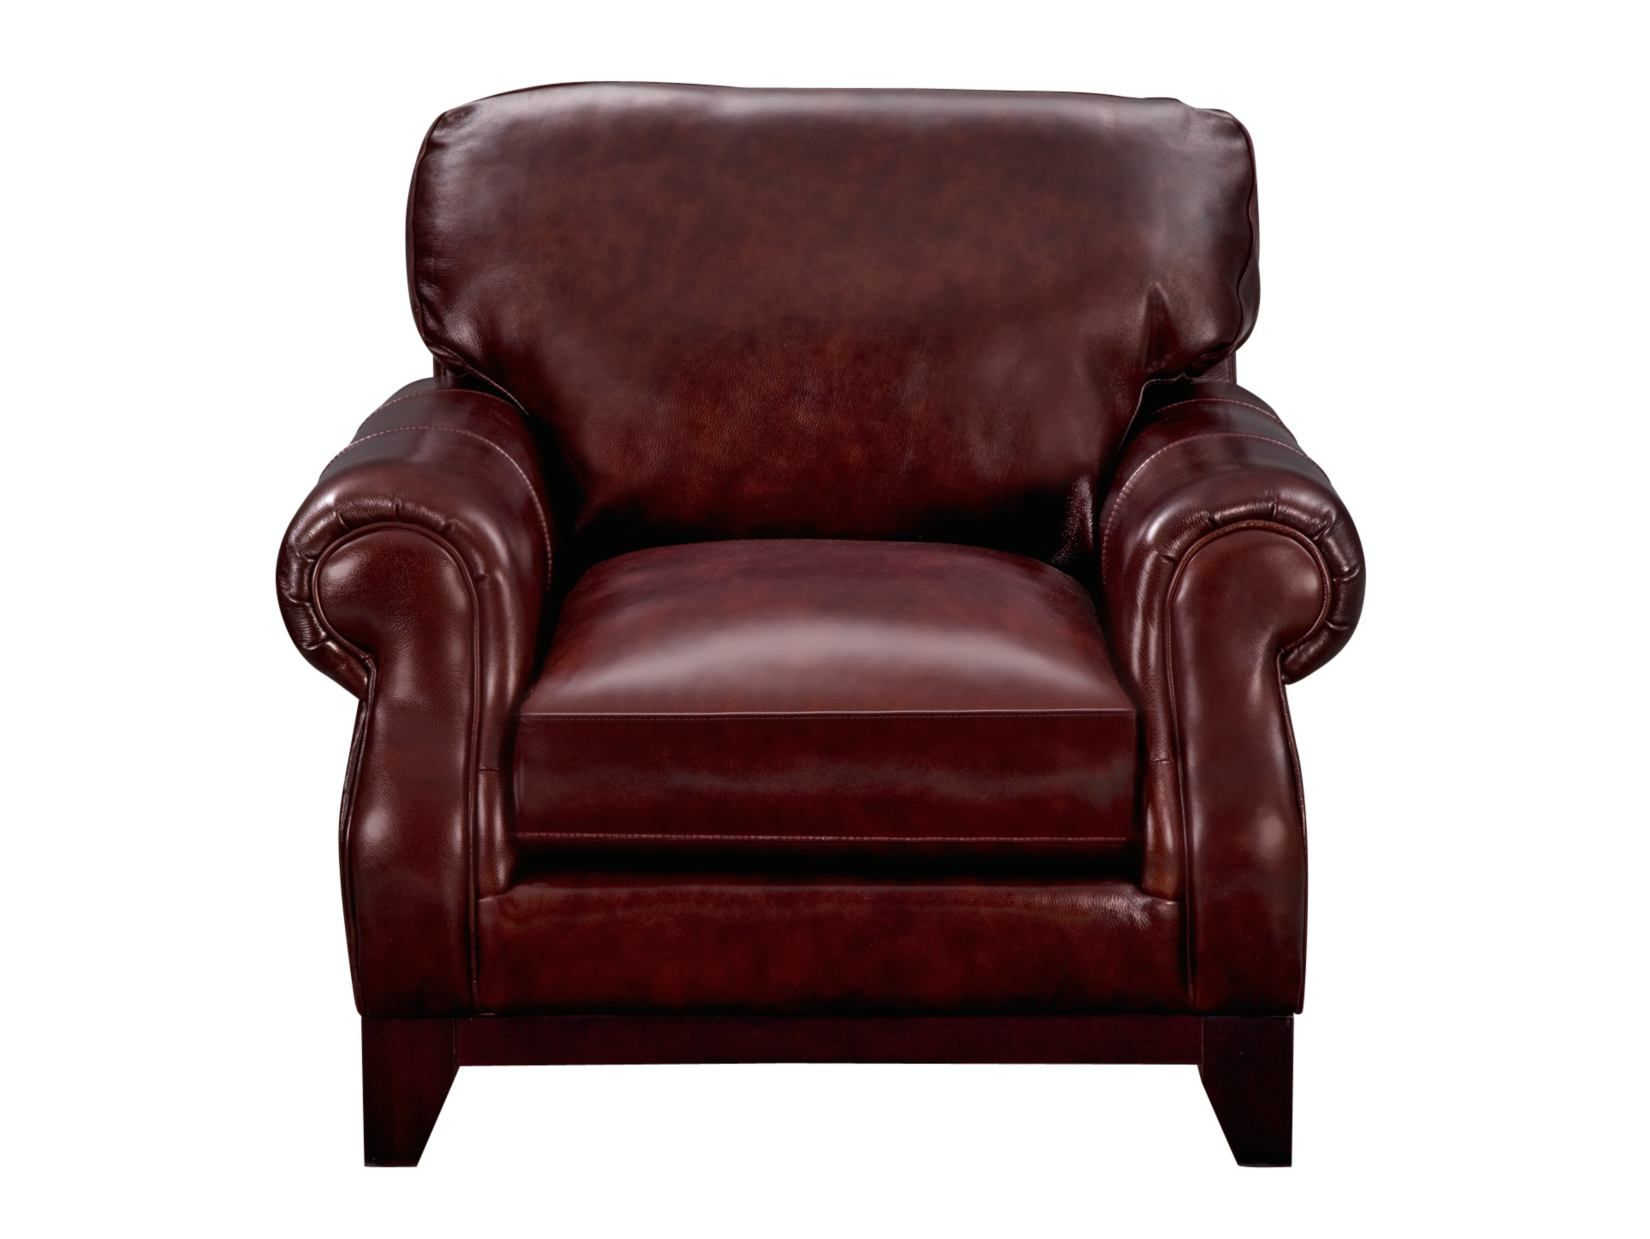 Genial Carlton Burgundy Leather Chair   American Signature Furniture